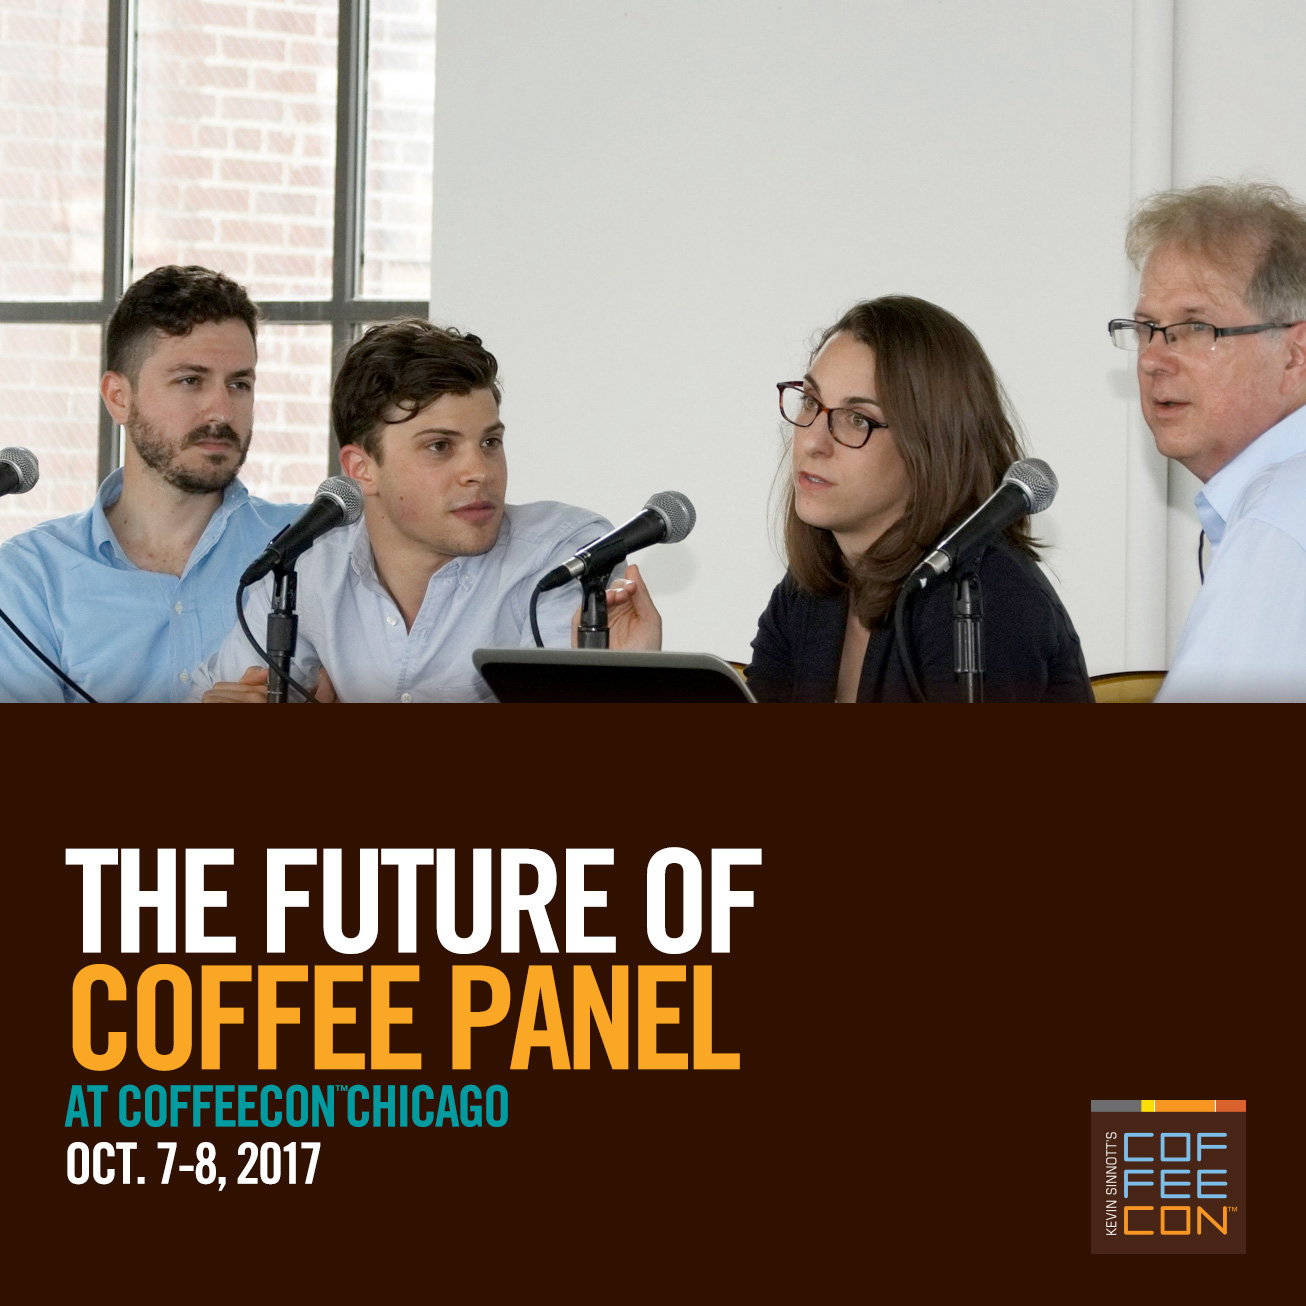 The Future of Coffee Panel at CoffeeConChi 2017